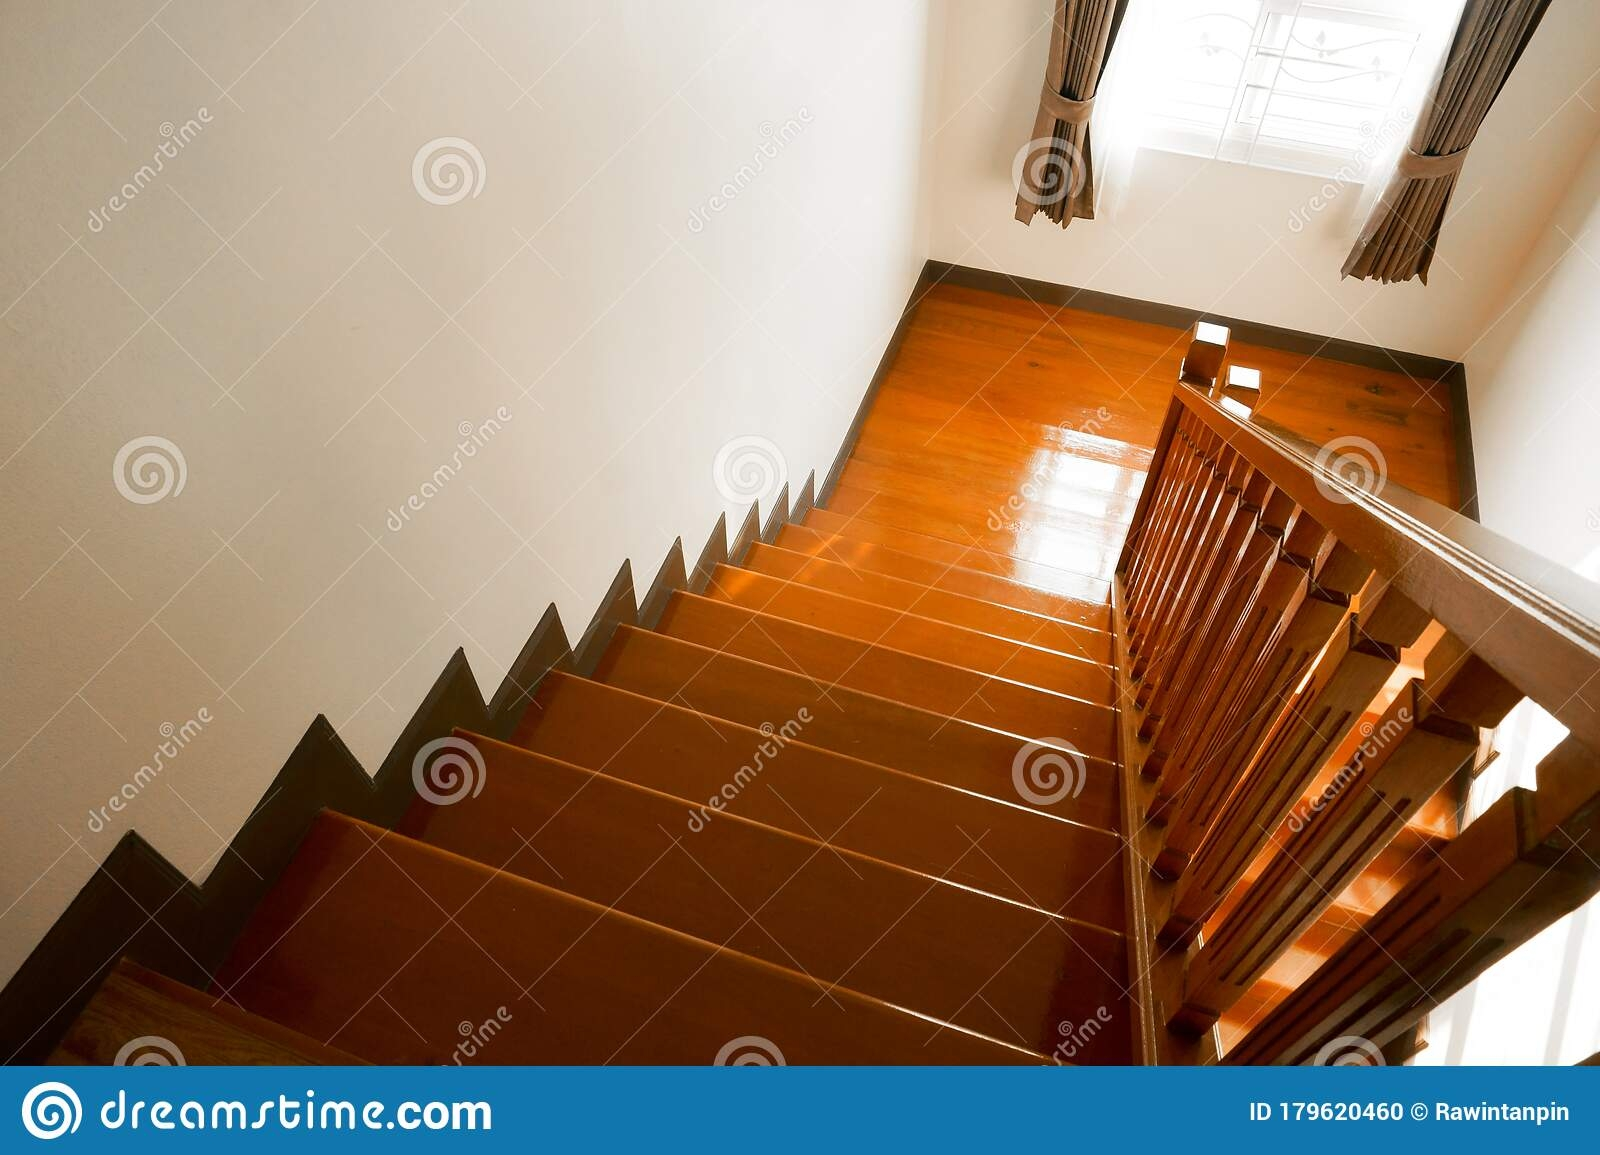 Brown Wooden Stair Interior Decorated Modern Style Of Residential | Style Of Stairs Inside House | Outside India House | Spiral | Design | Mansion | Historic House